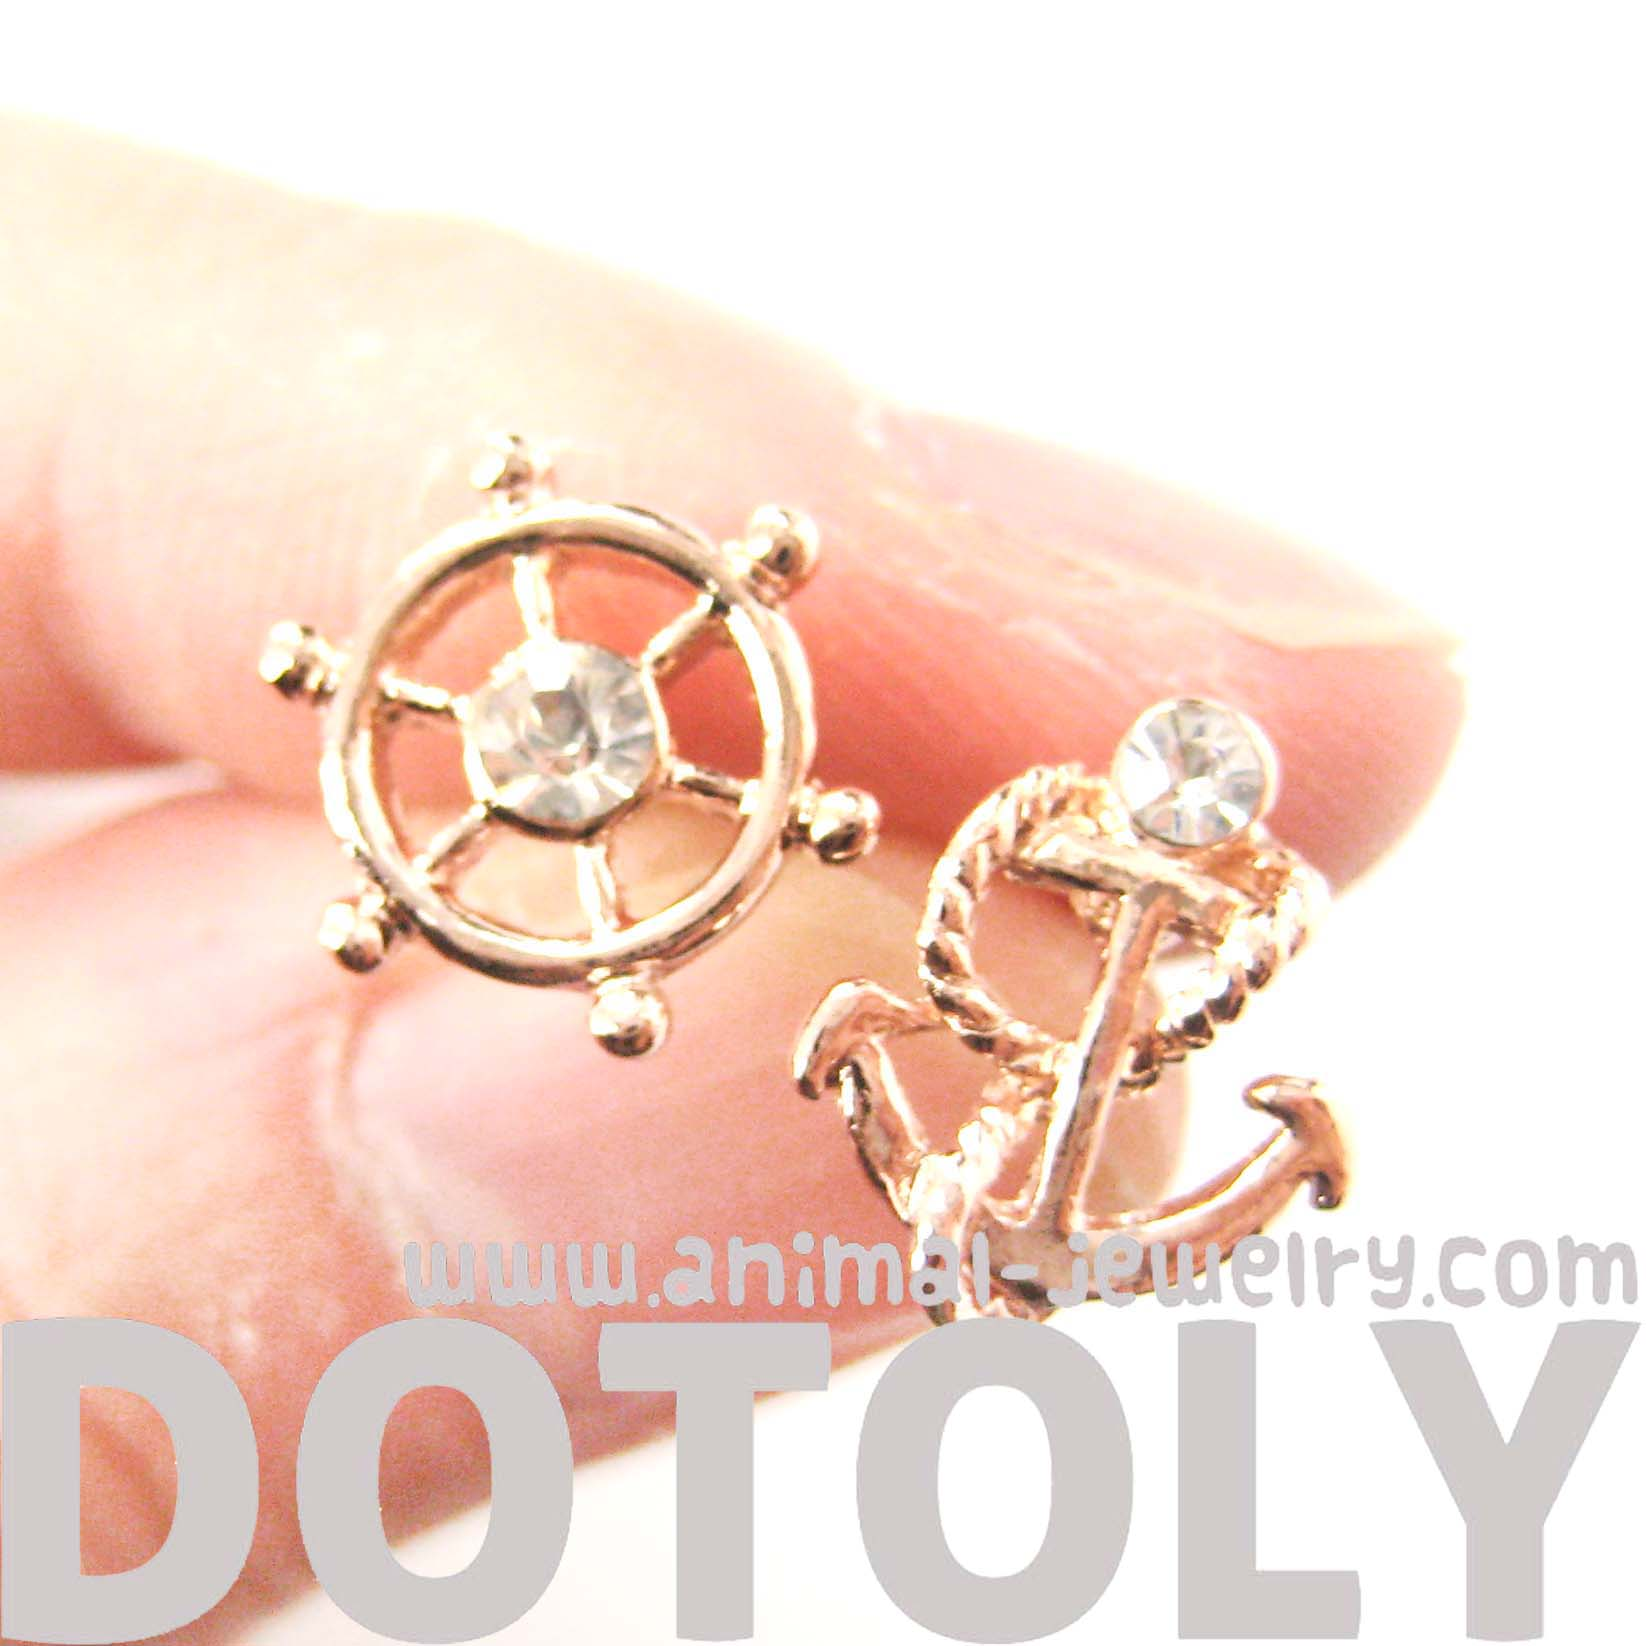 nautical-themed-anchor-and-wheel-shaped-stud-earrings-in-rose-gold